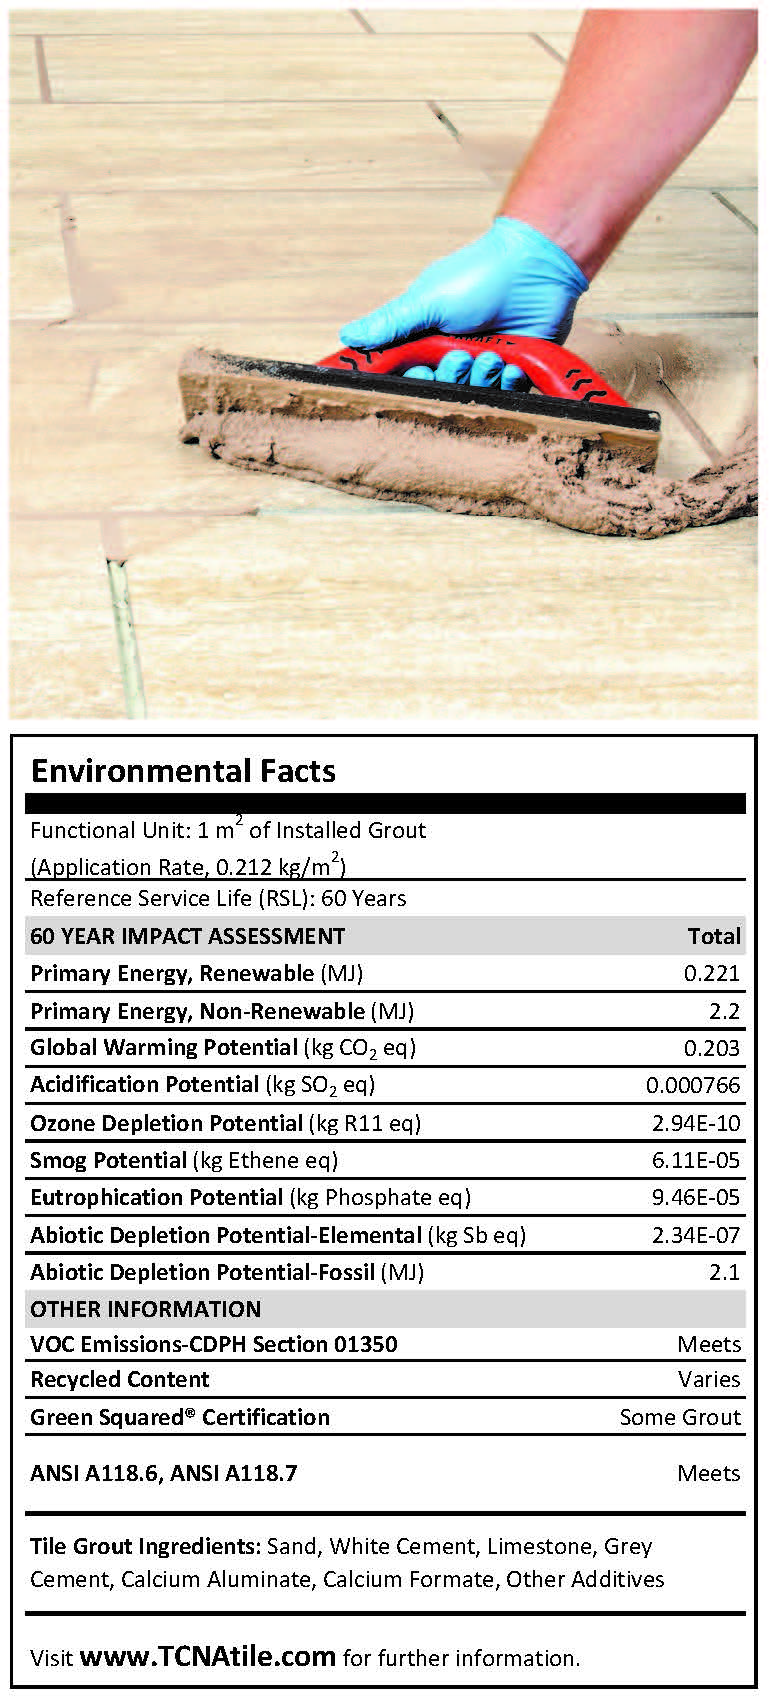 N. American Grout img Environmental Impacts